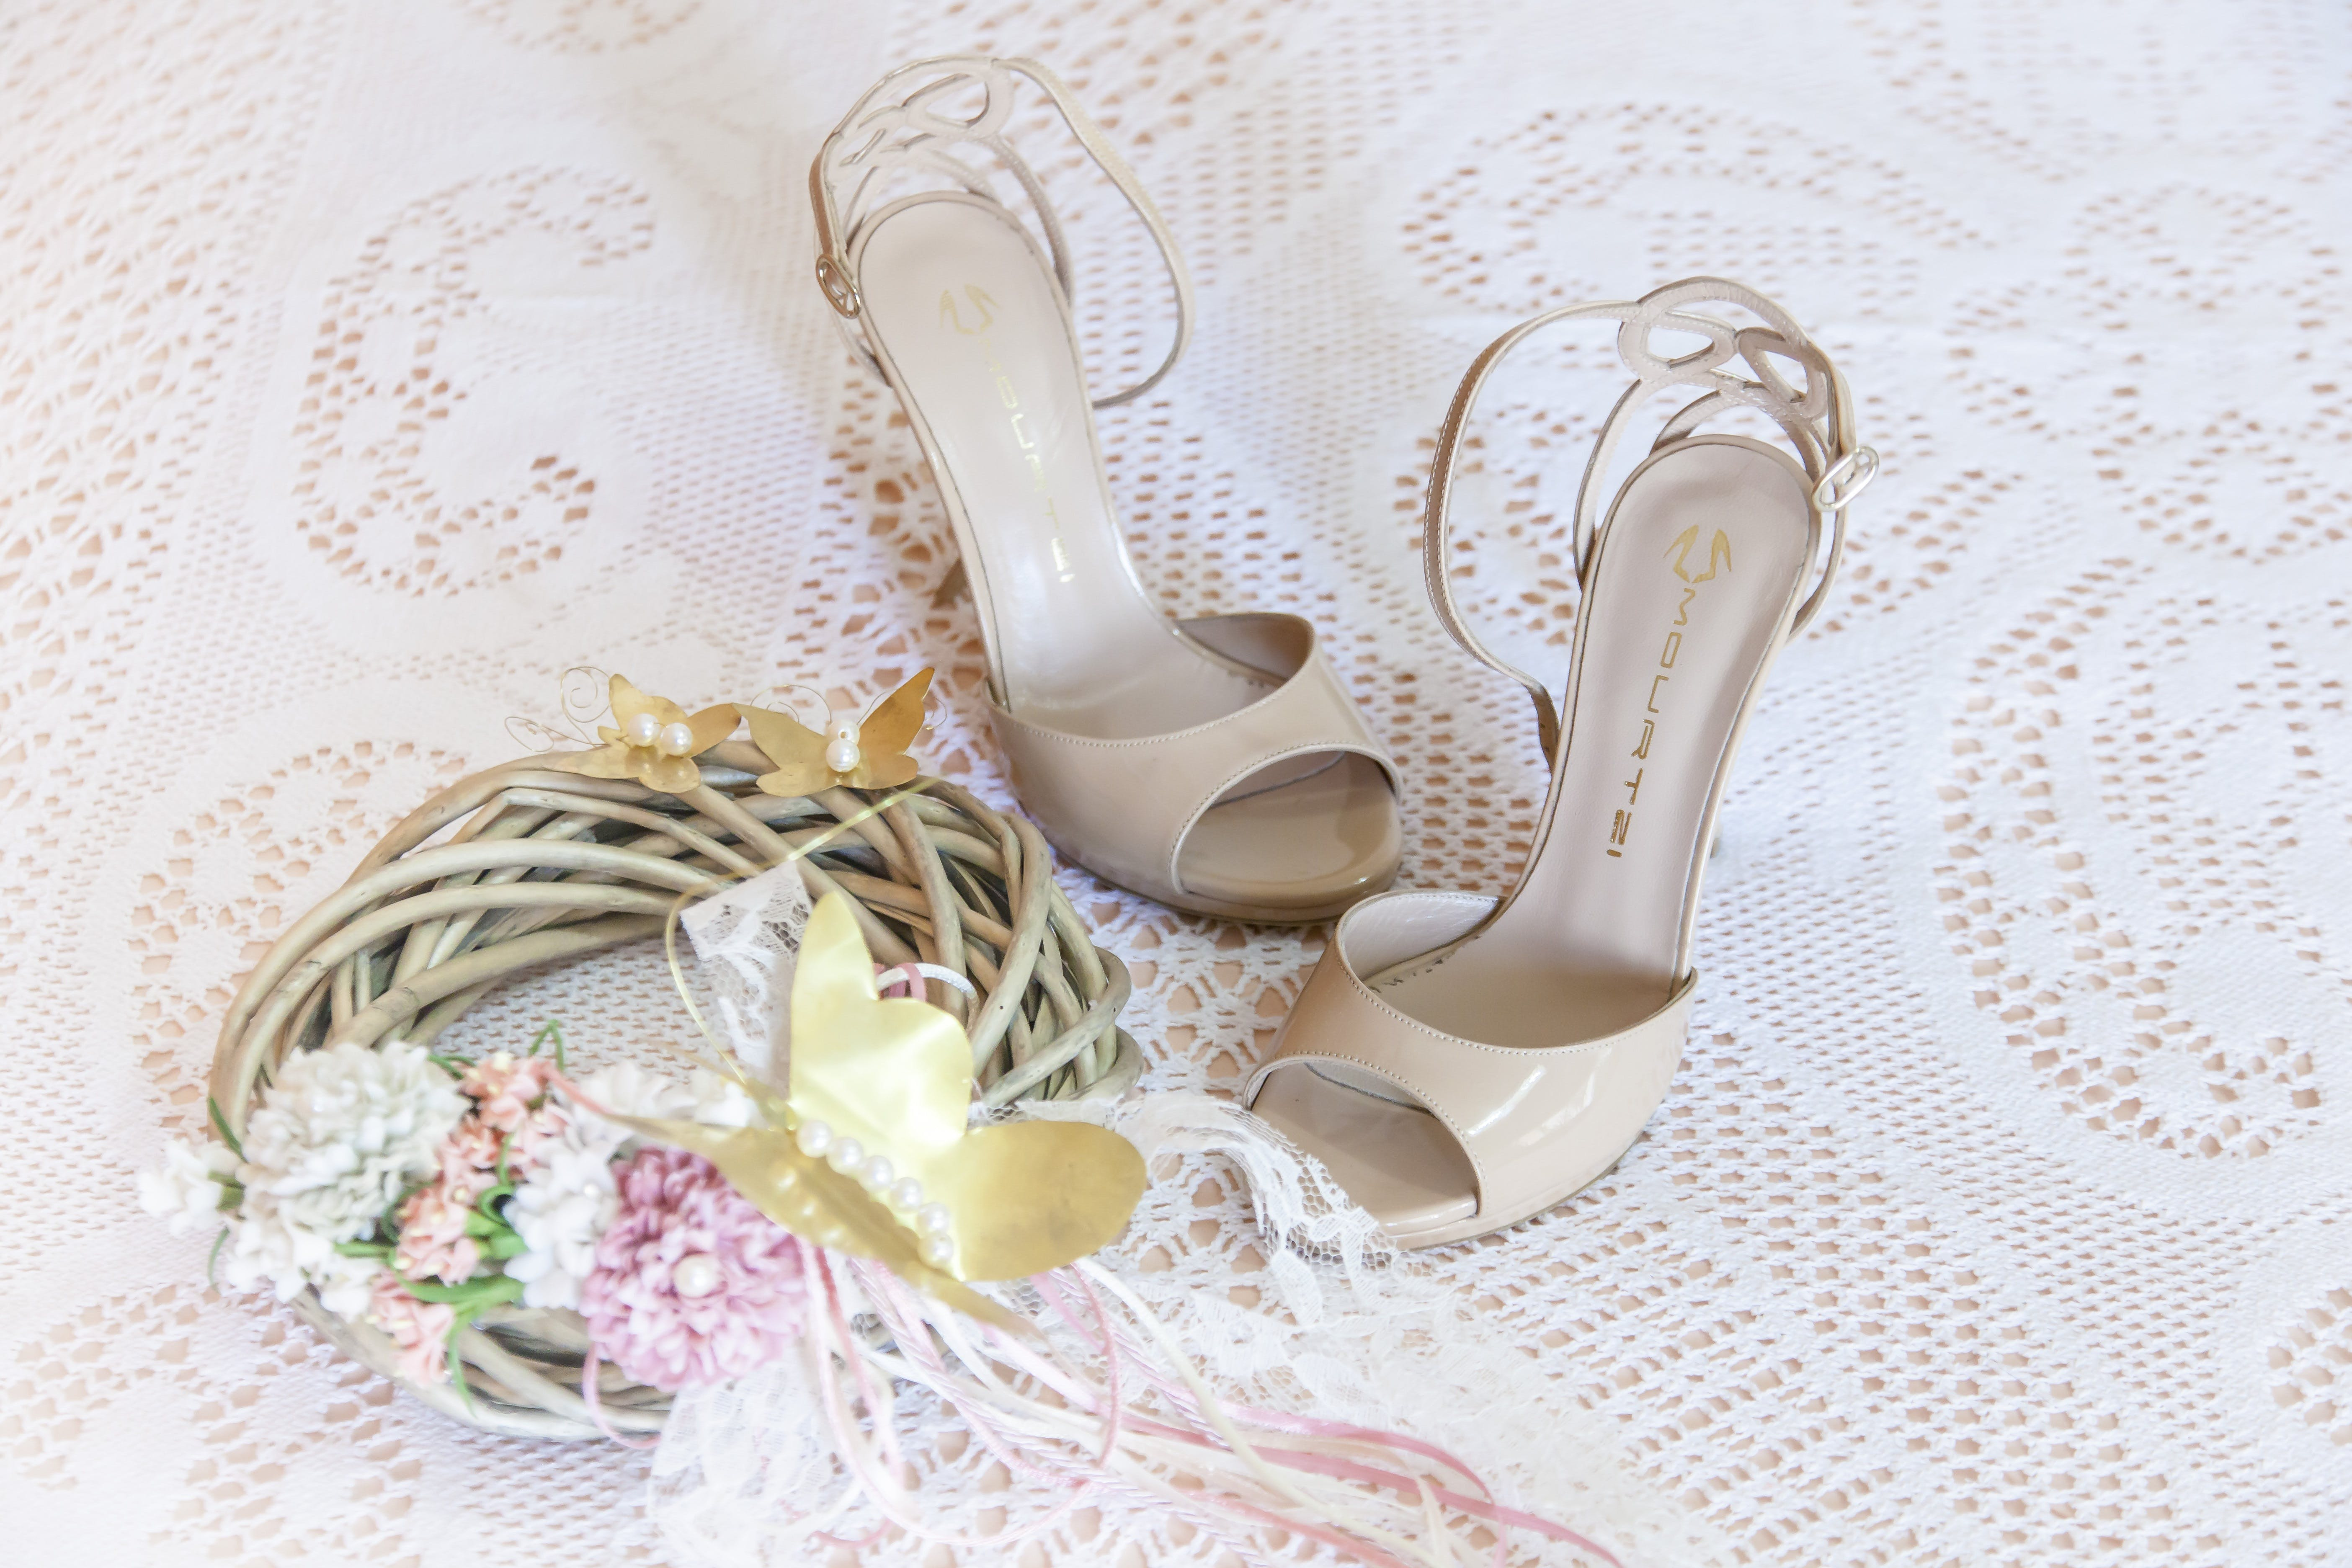 Women's White Stiletto Sandals on White Floral Design Textile